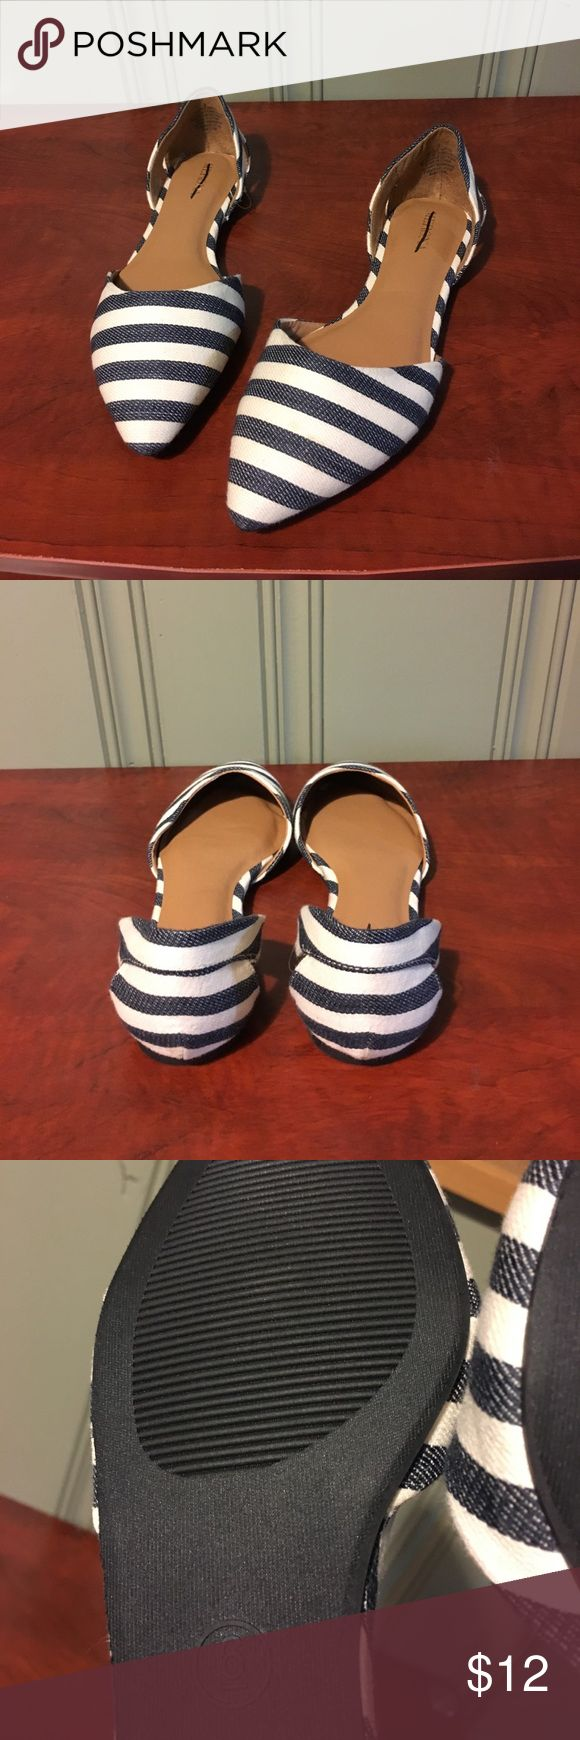 Merona Flats Blue and white flats from Target. The material on the shoe feels like denim. Merona Shoes Flats & Loafers